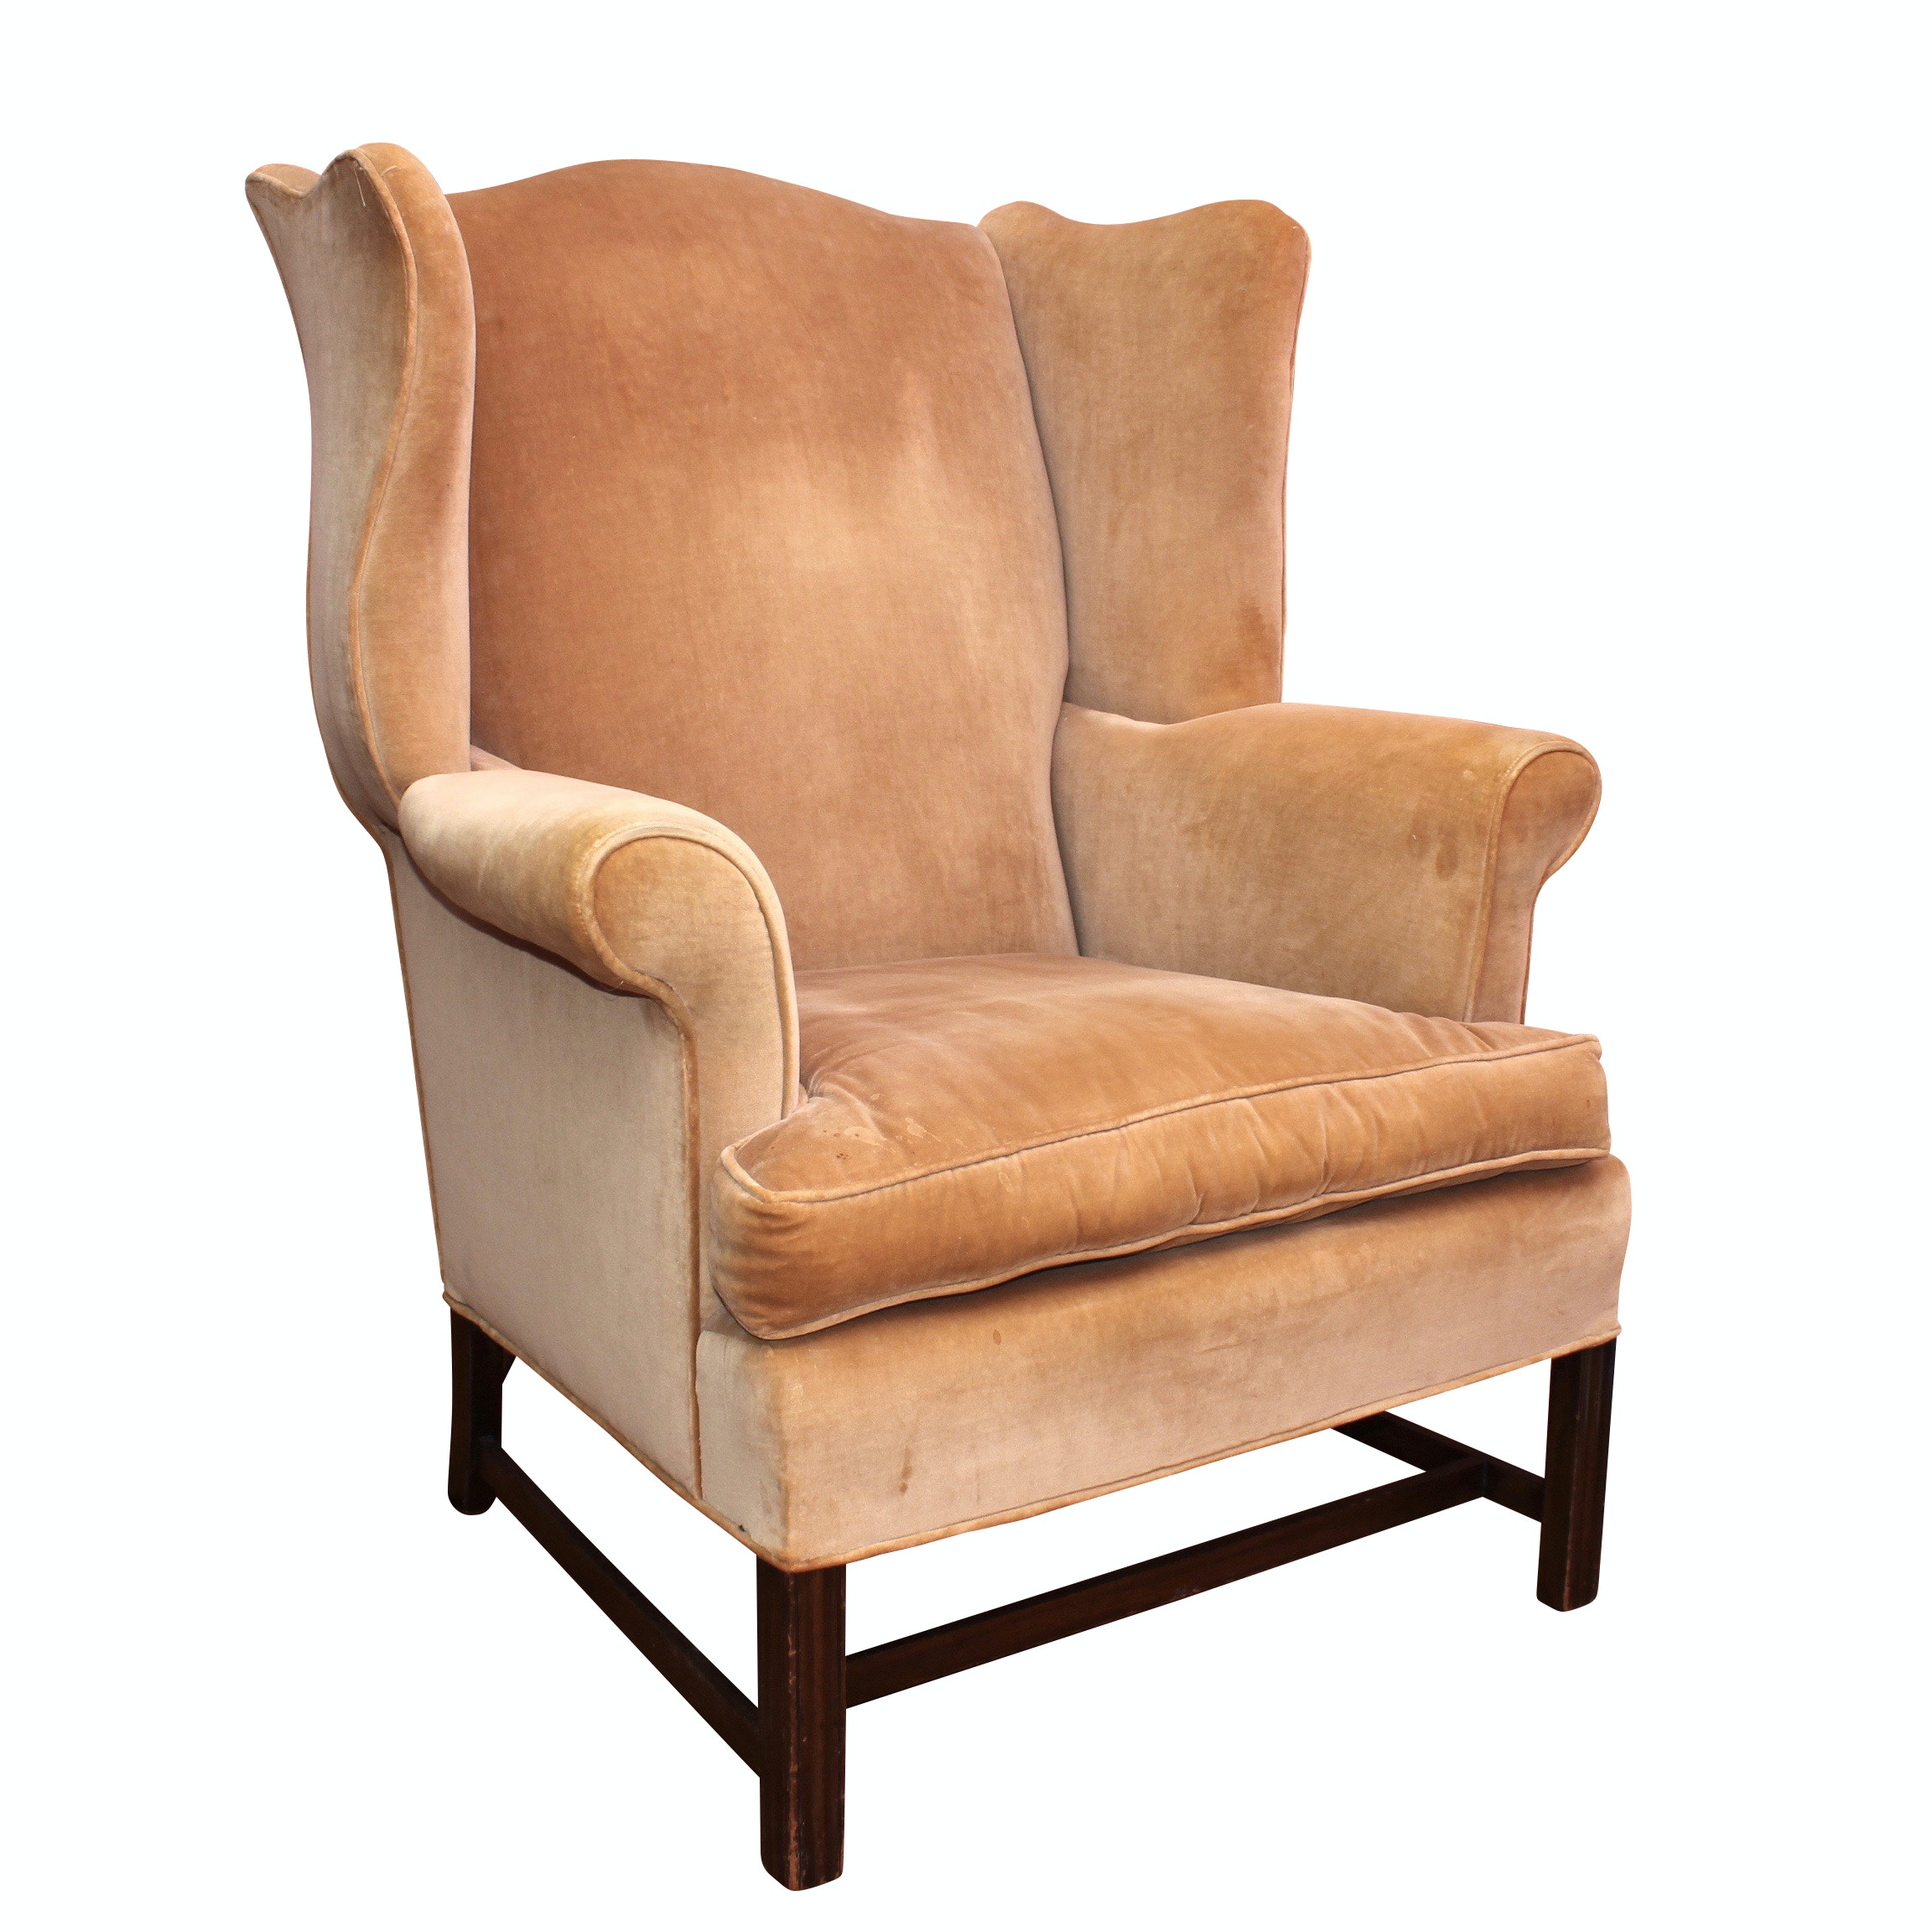 Queen Anne Upholstered Wingback Arm Chair, Antique